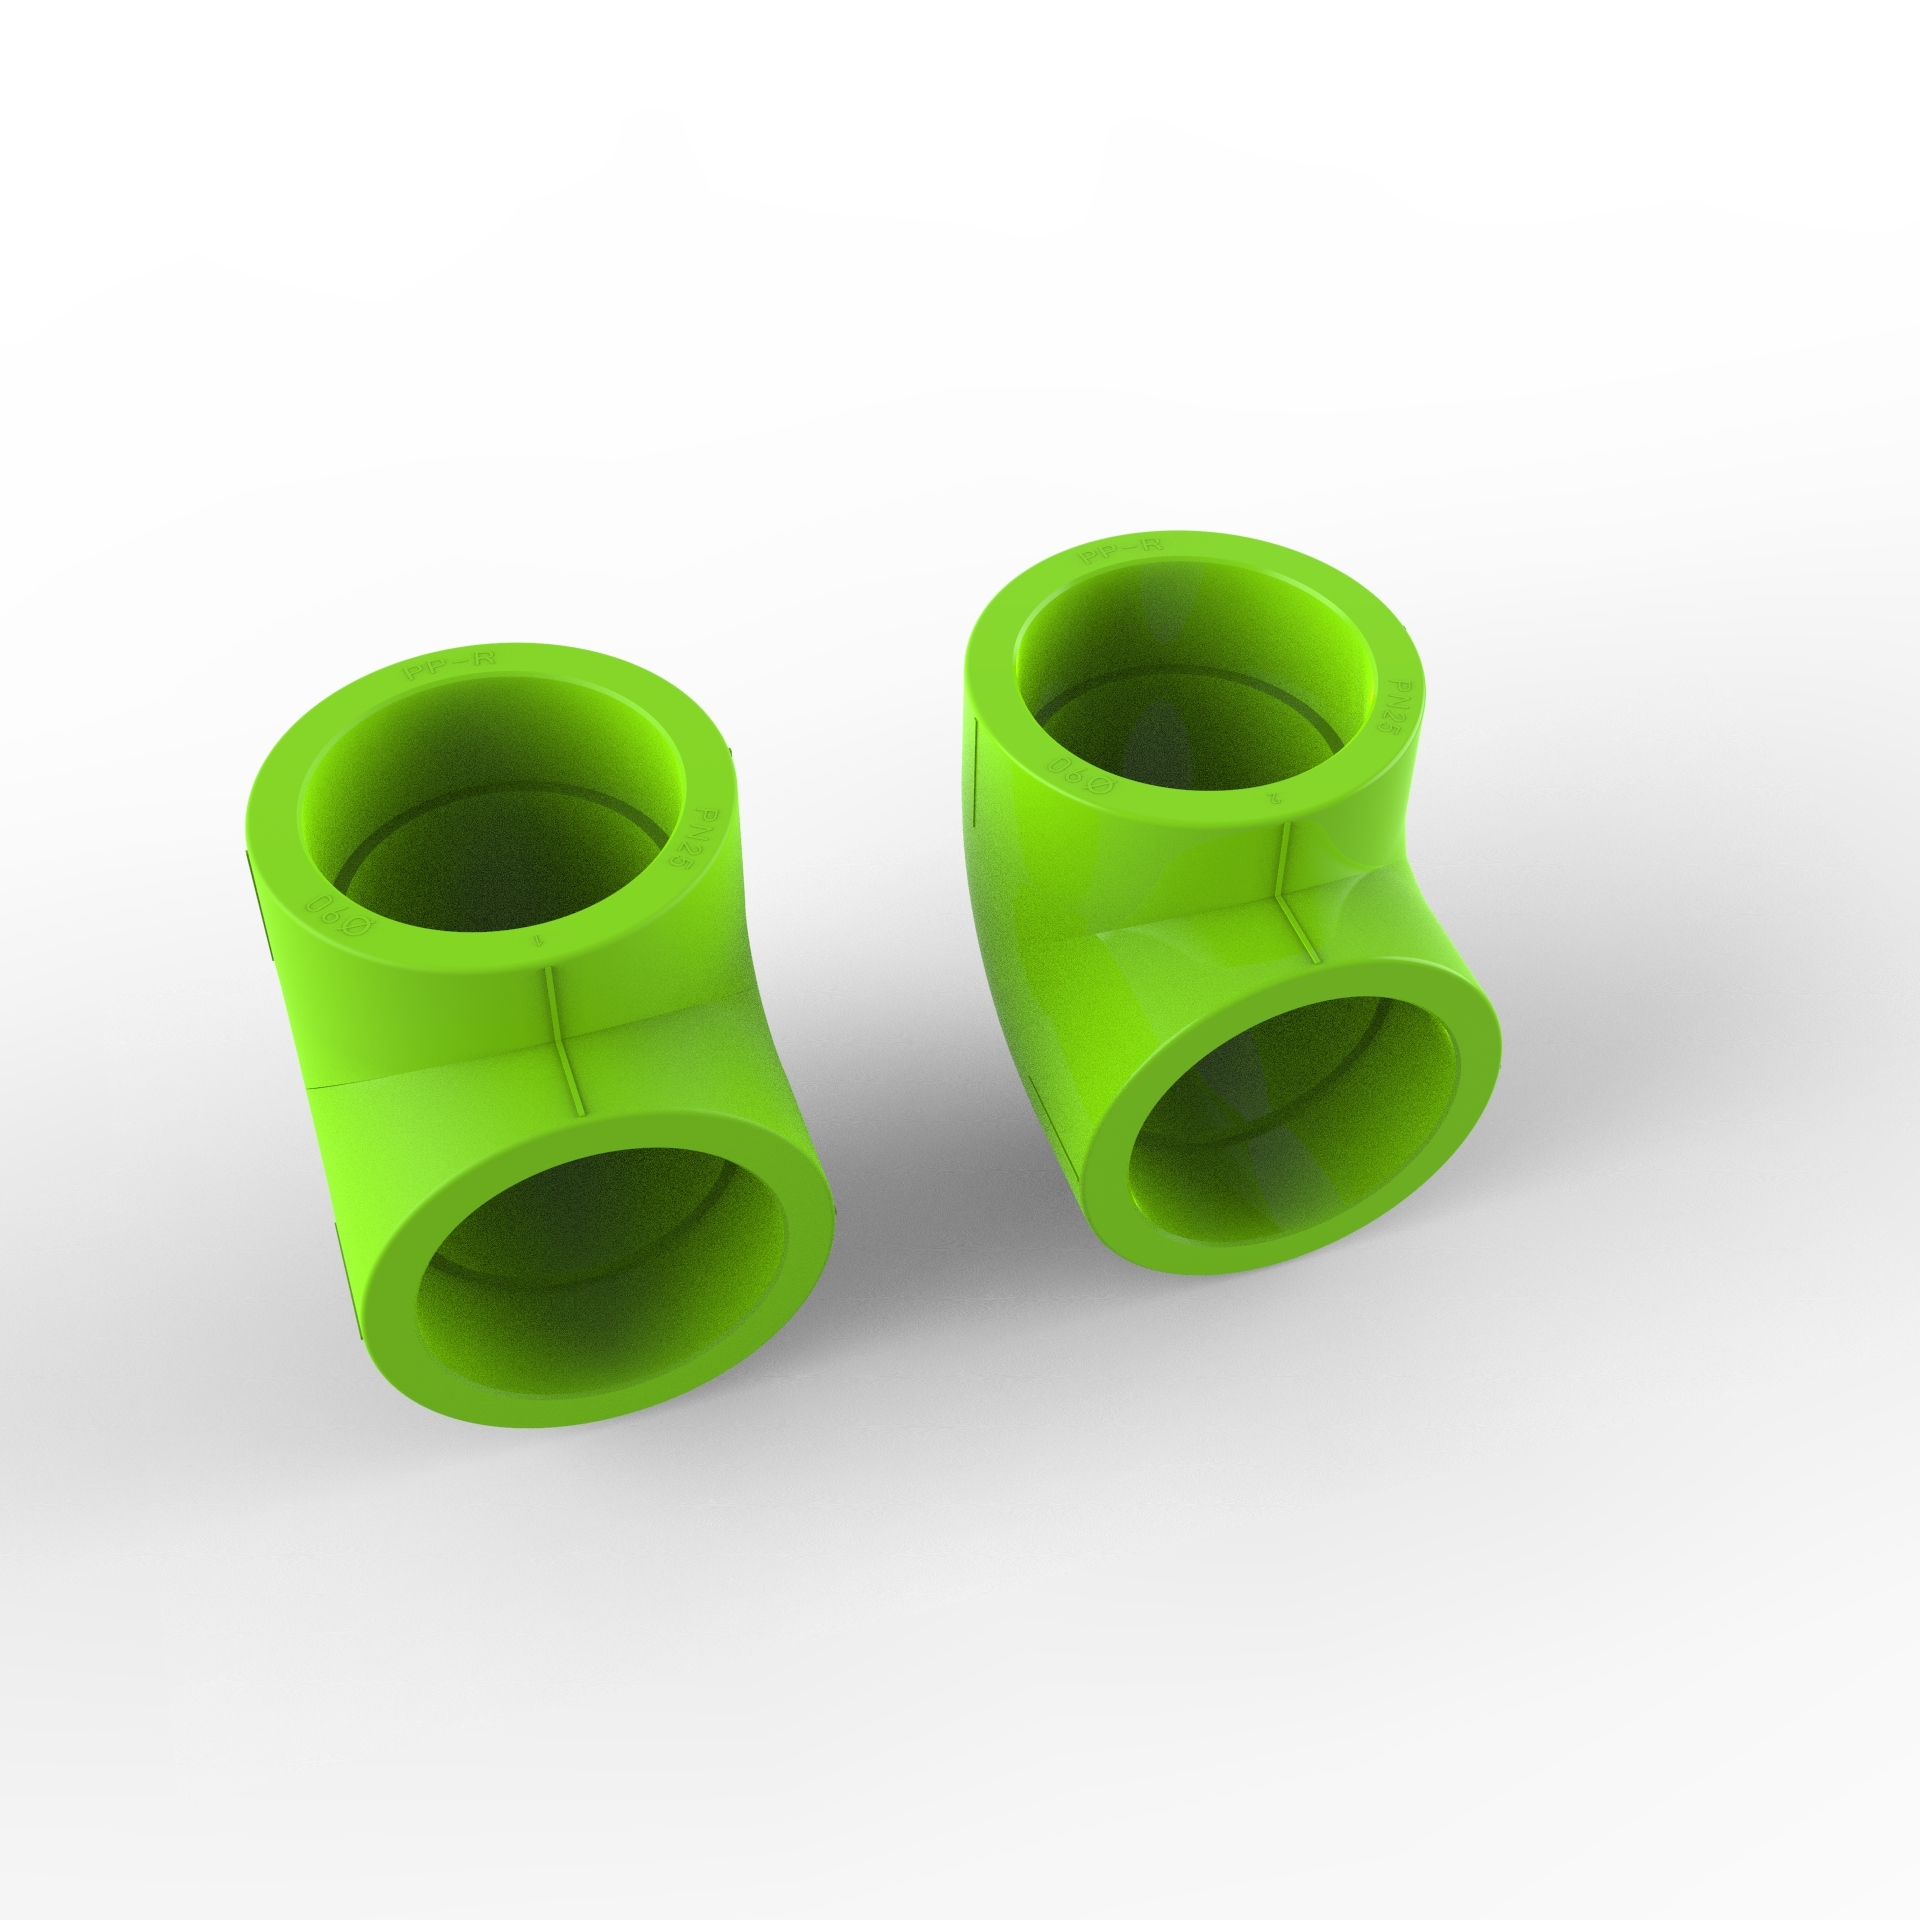 Pvc Plastic Pipe Fitting Mold